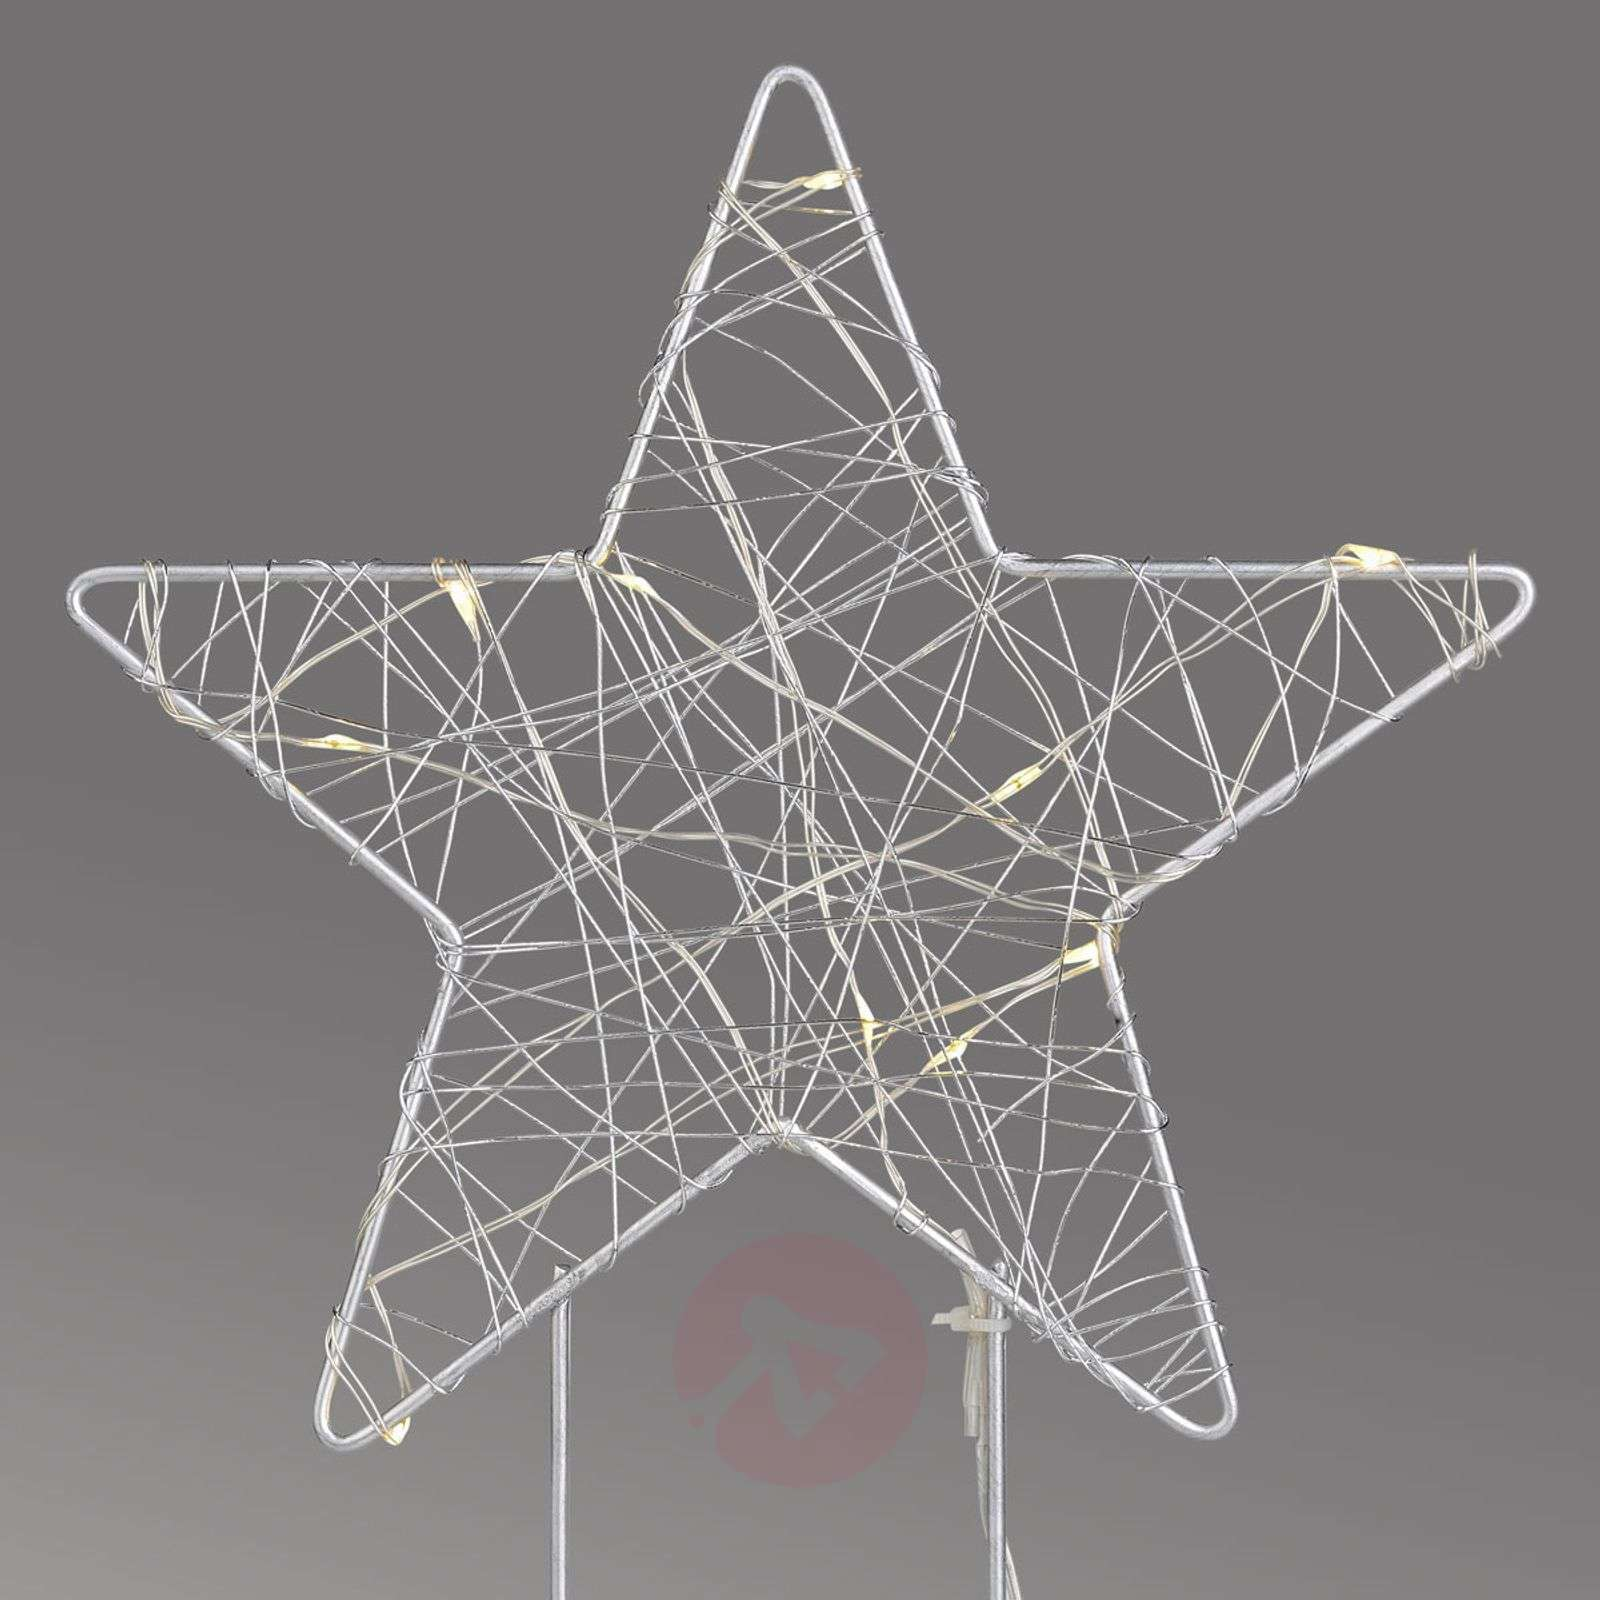 LED star for flower ports Gardener-6507456-01